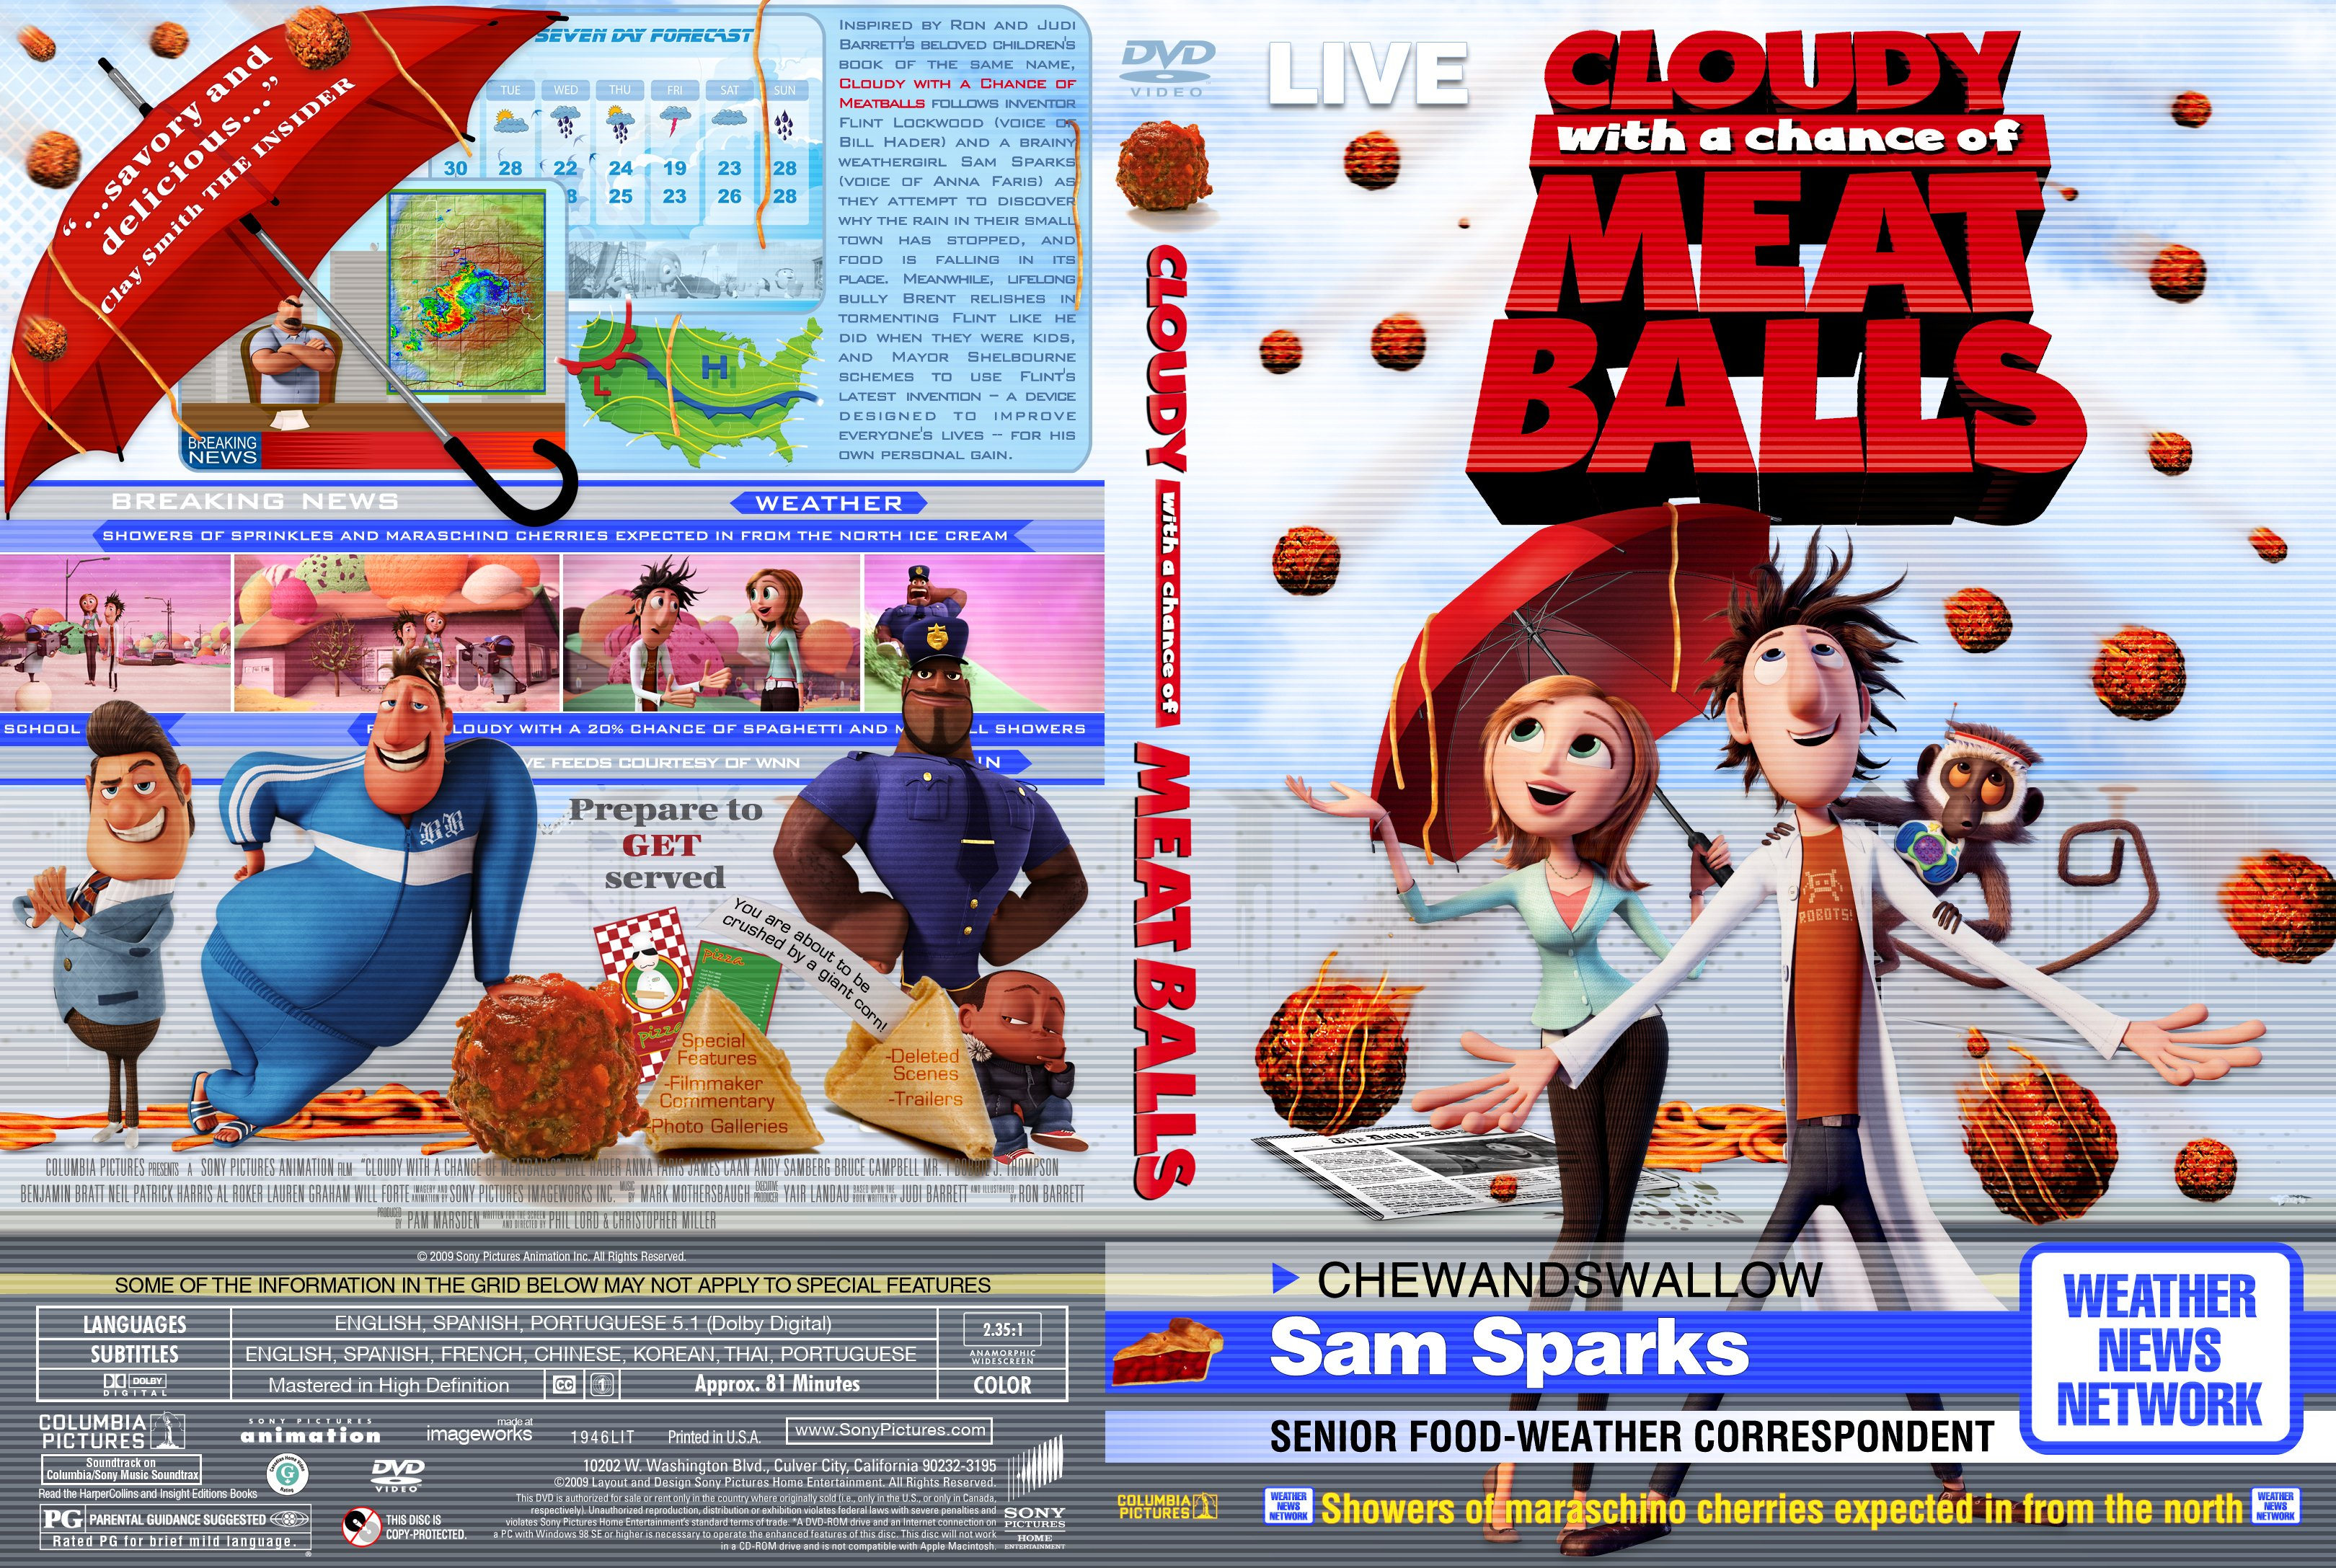 Covers Box Sk Cloudy With A Chance Of Meatballs 2009 High Quality Dvd Blueray Movie